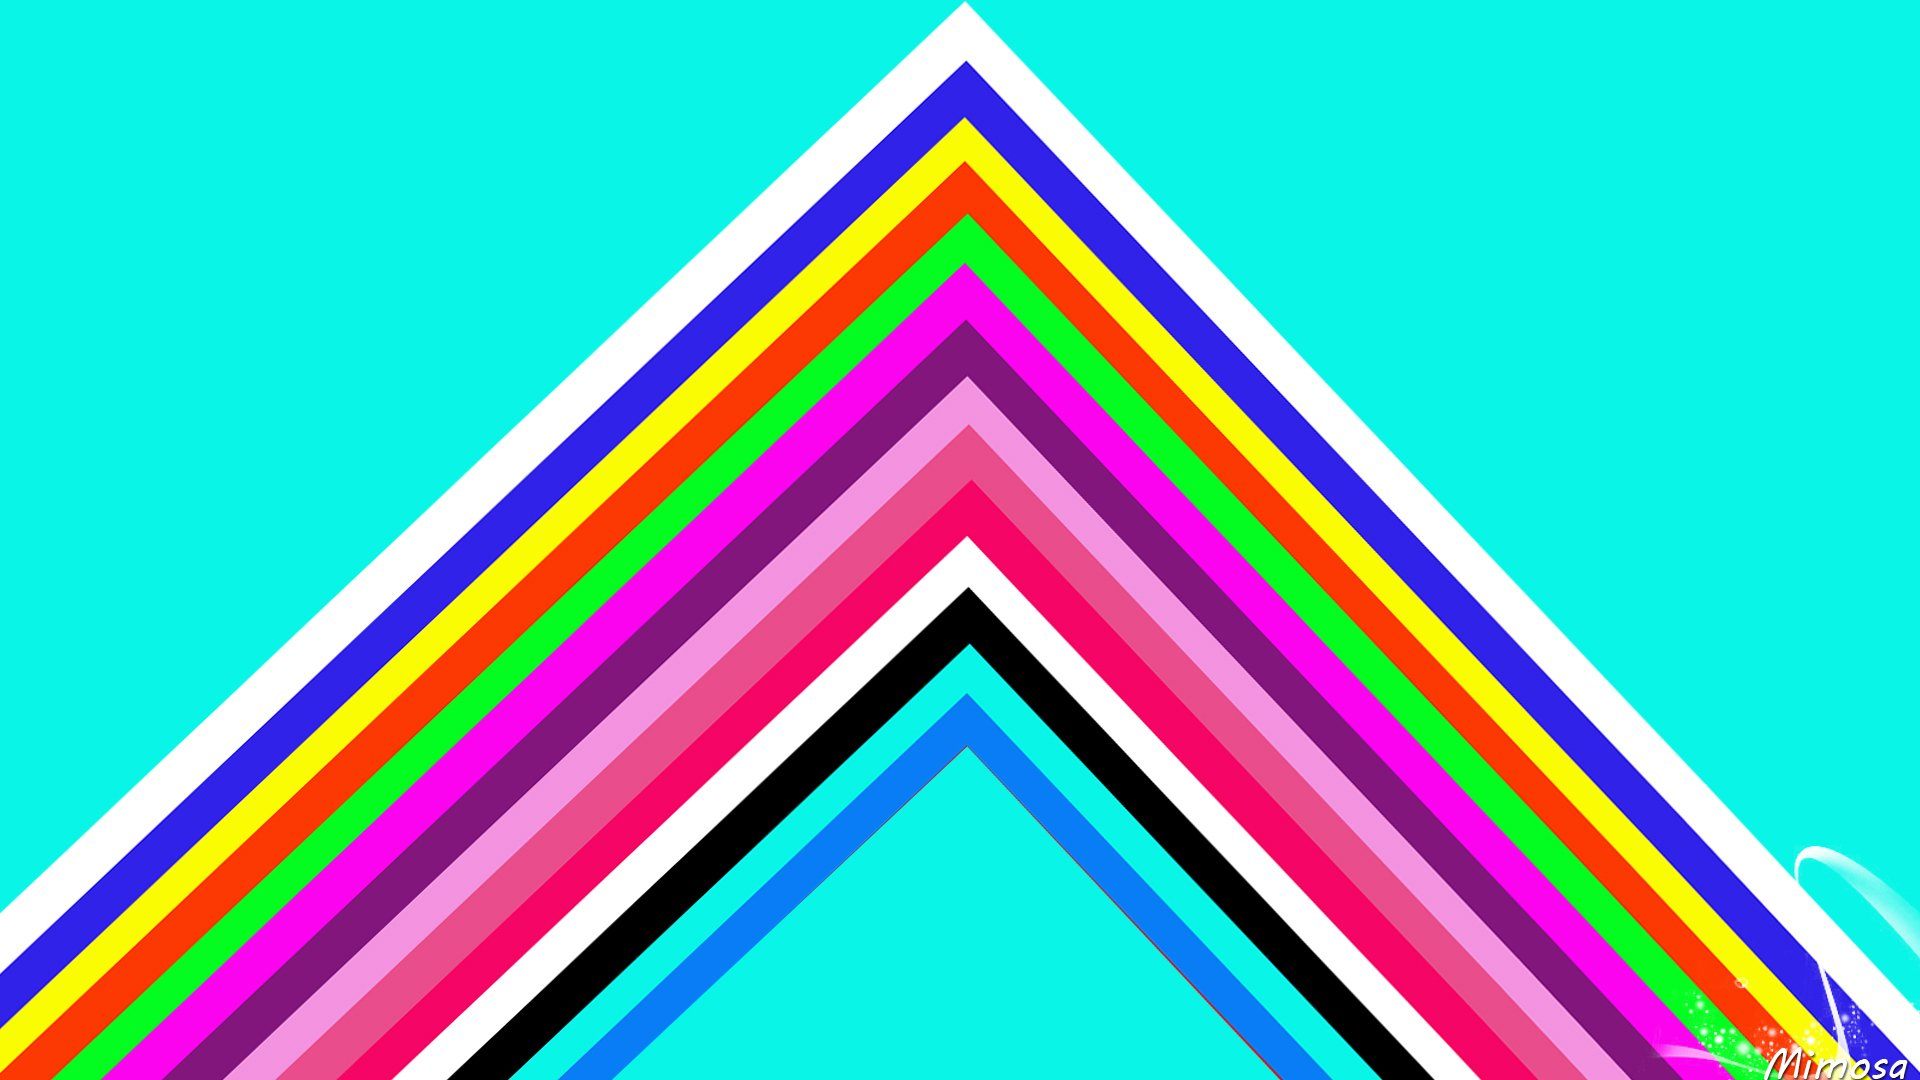 Stripes Geometry Abstract 720x1280 Wallpaper Abstract